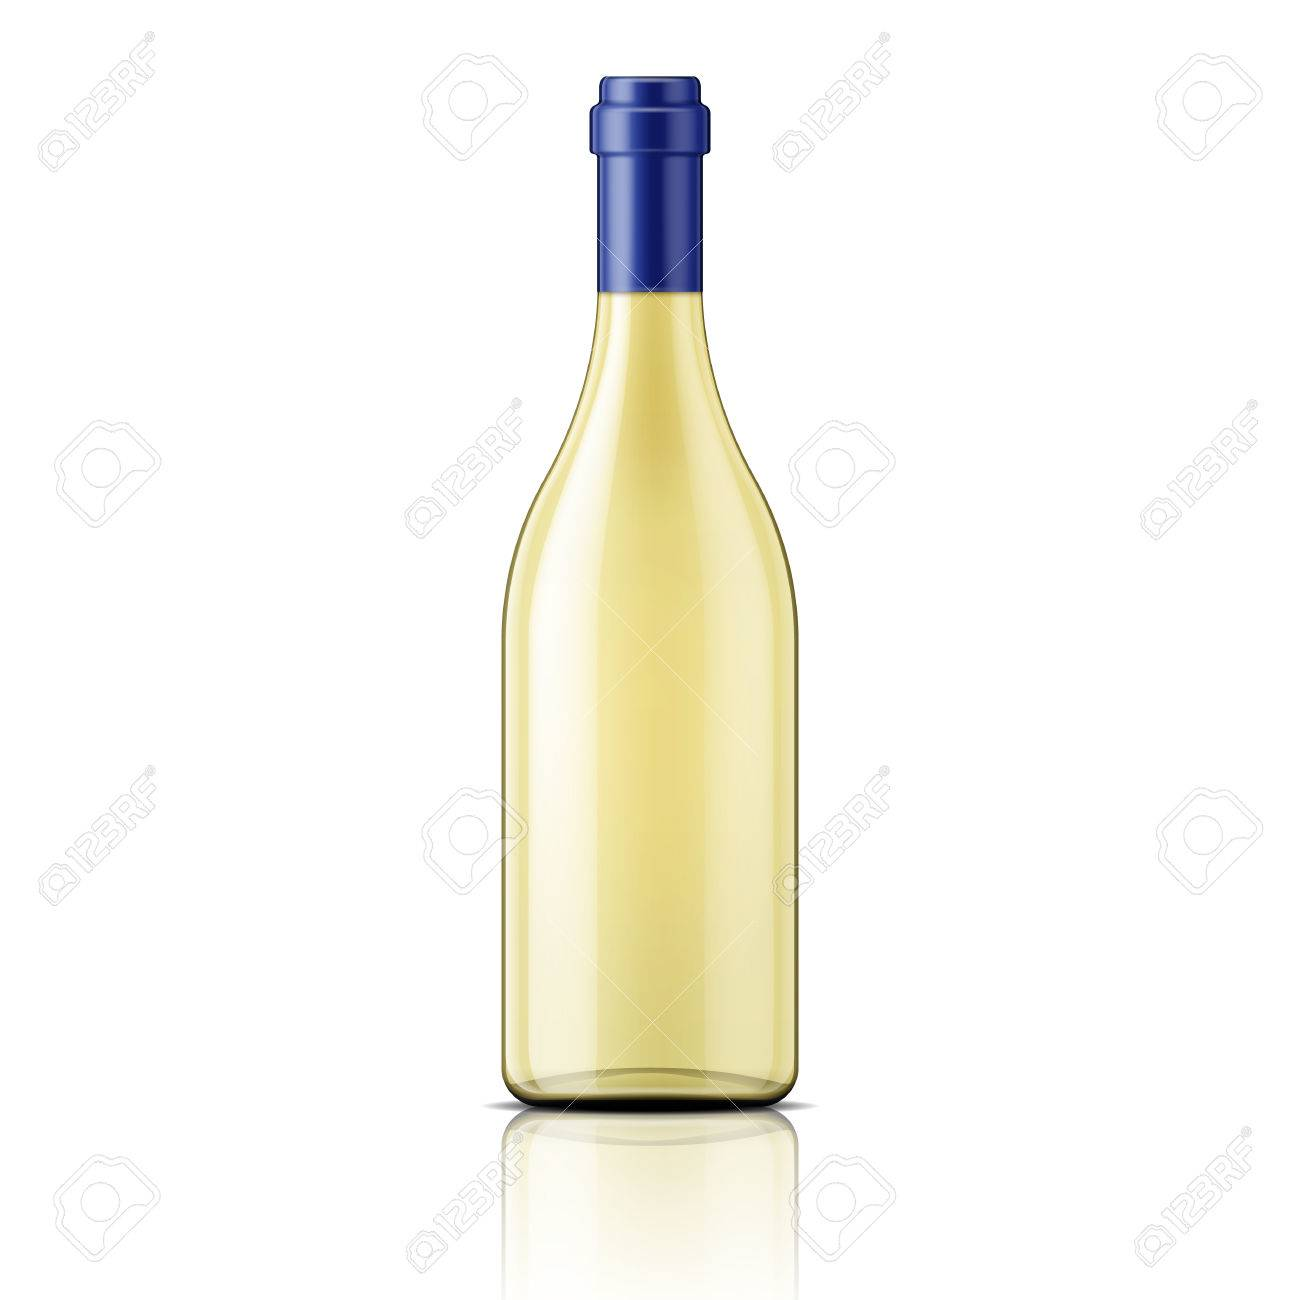 transparent glass bottle template with white wine package